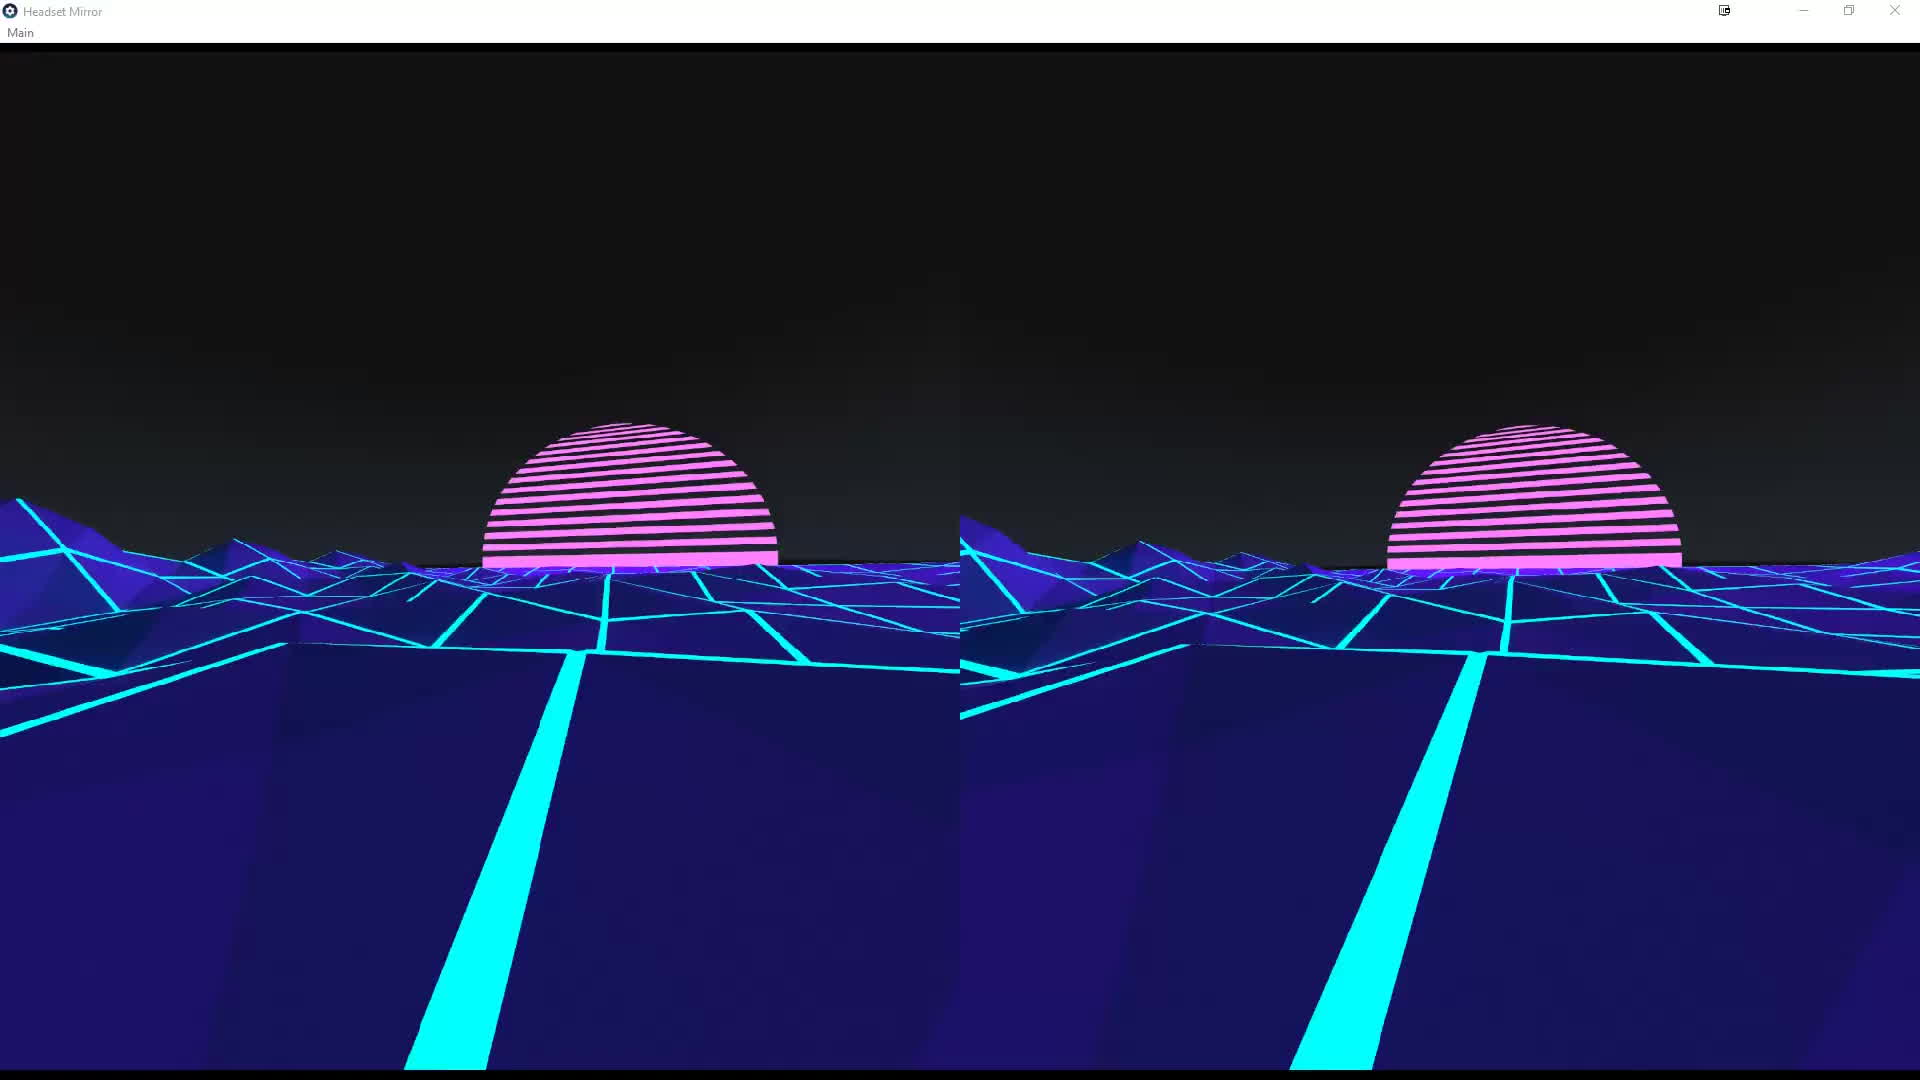 steamvr, Vaporwave custom SteamVR environment GIFs